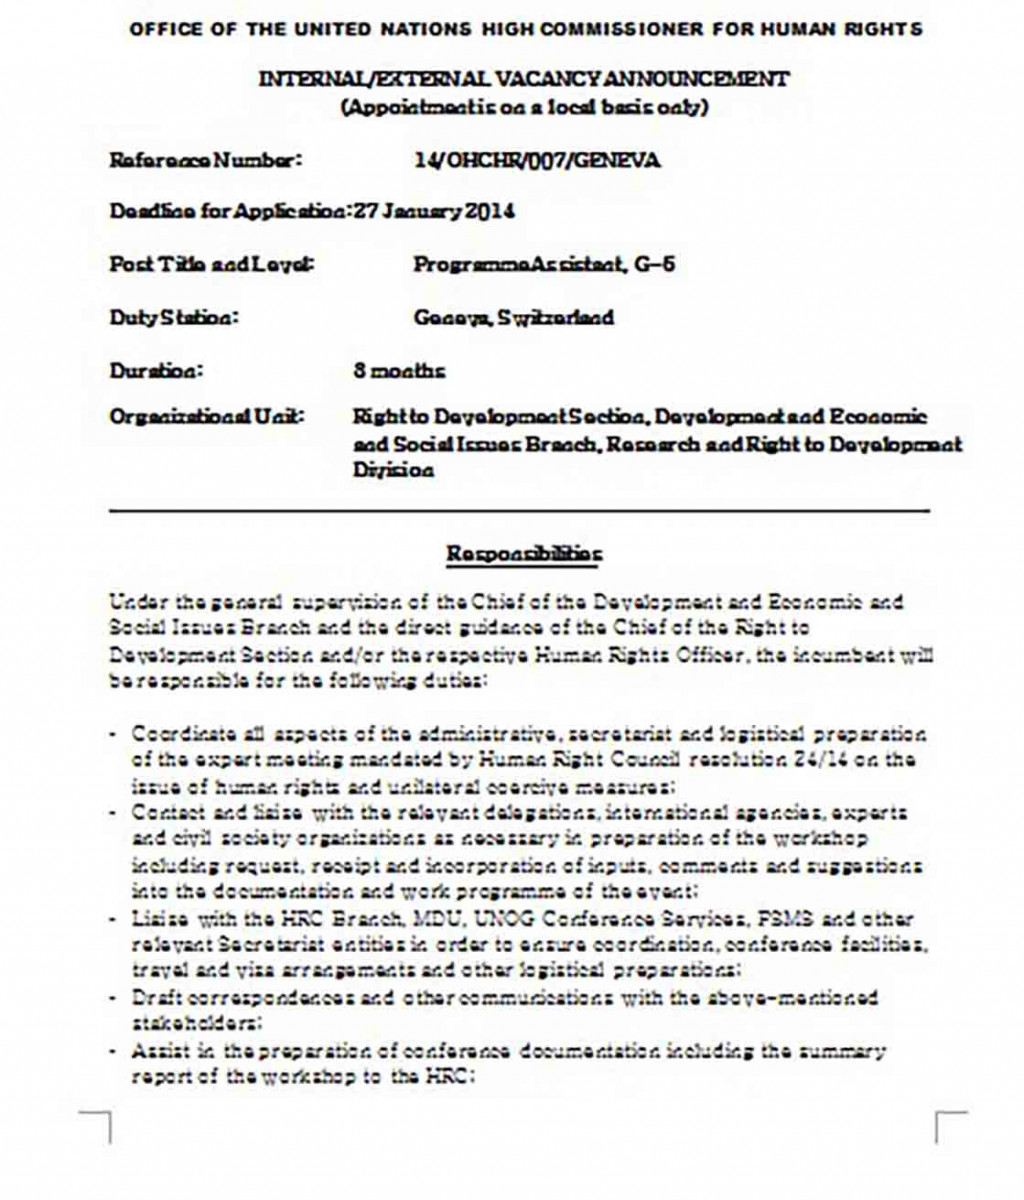 Job Description for a Post of Administrative Assistant Cover Letter